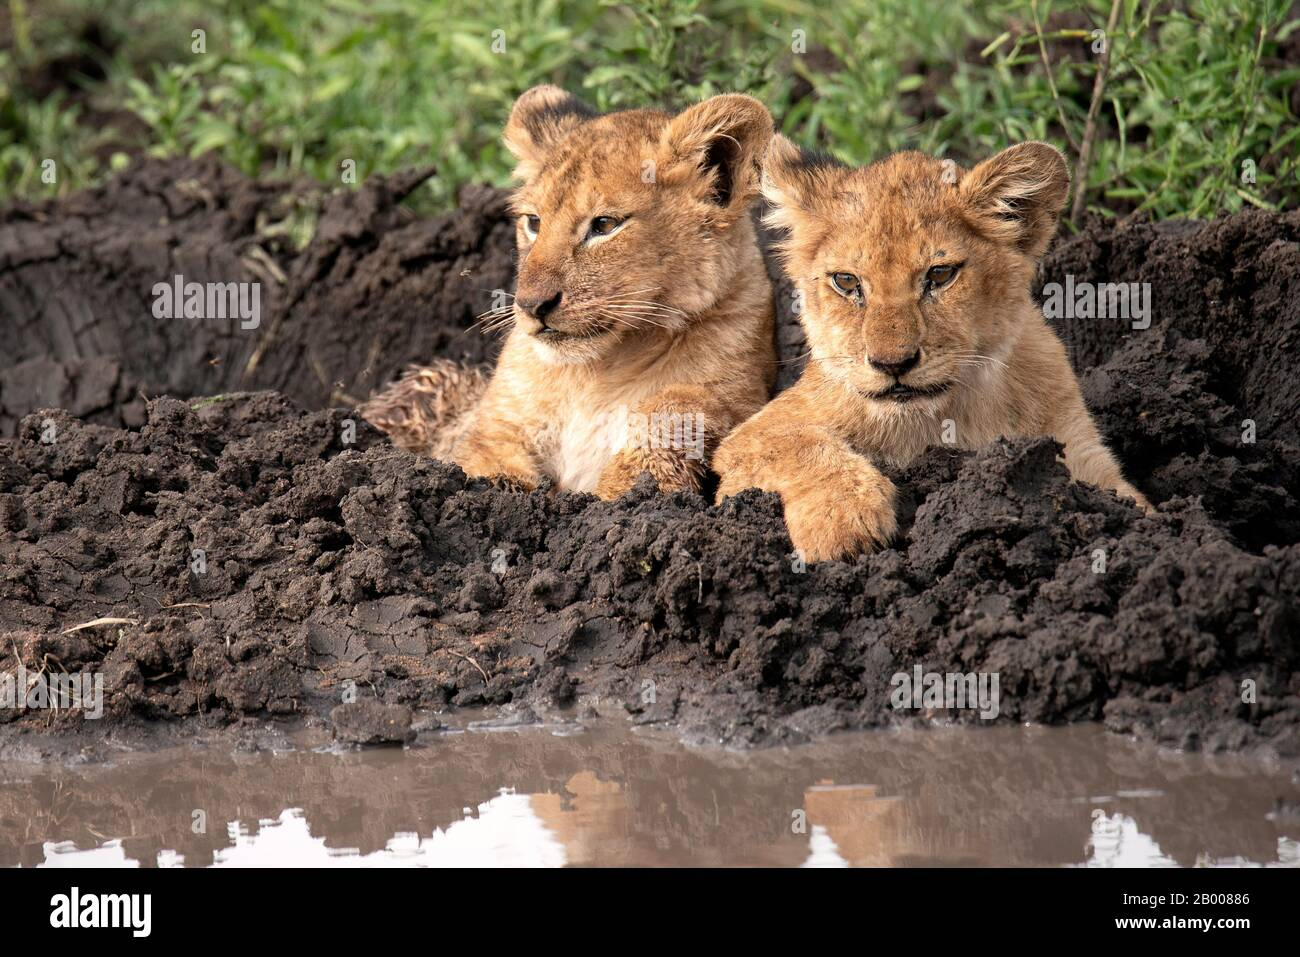 Lion cubs posing for their photo, just too cute for words Stock Photo